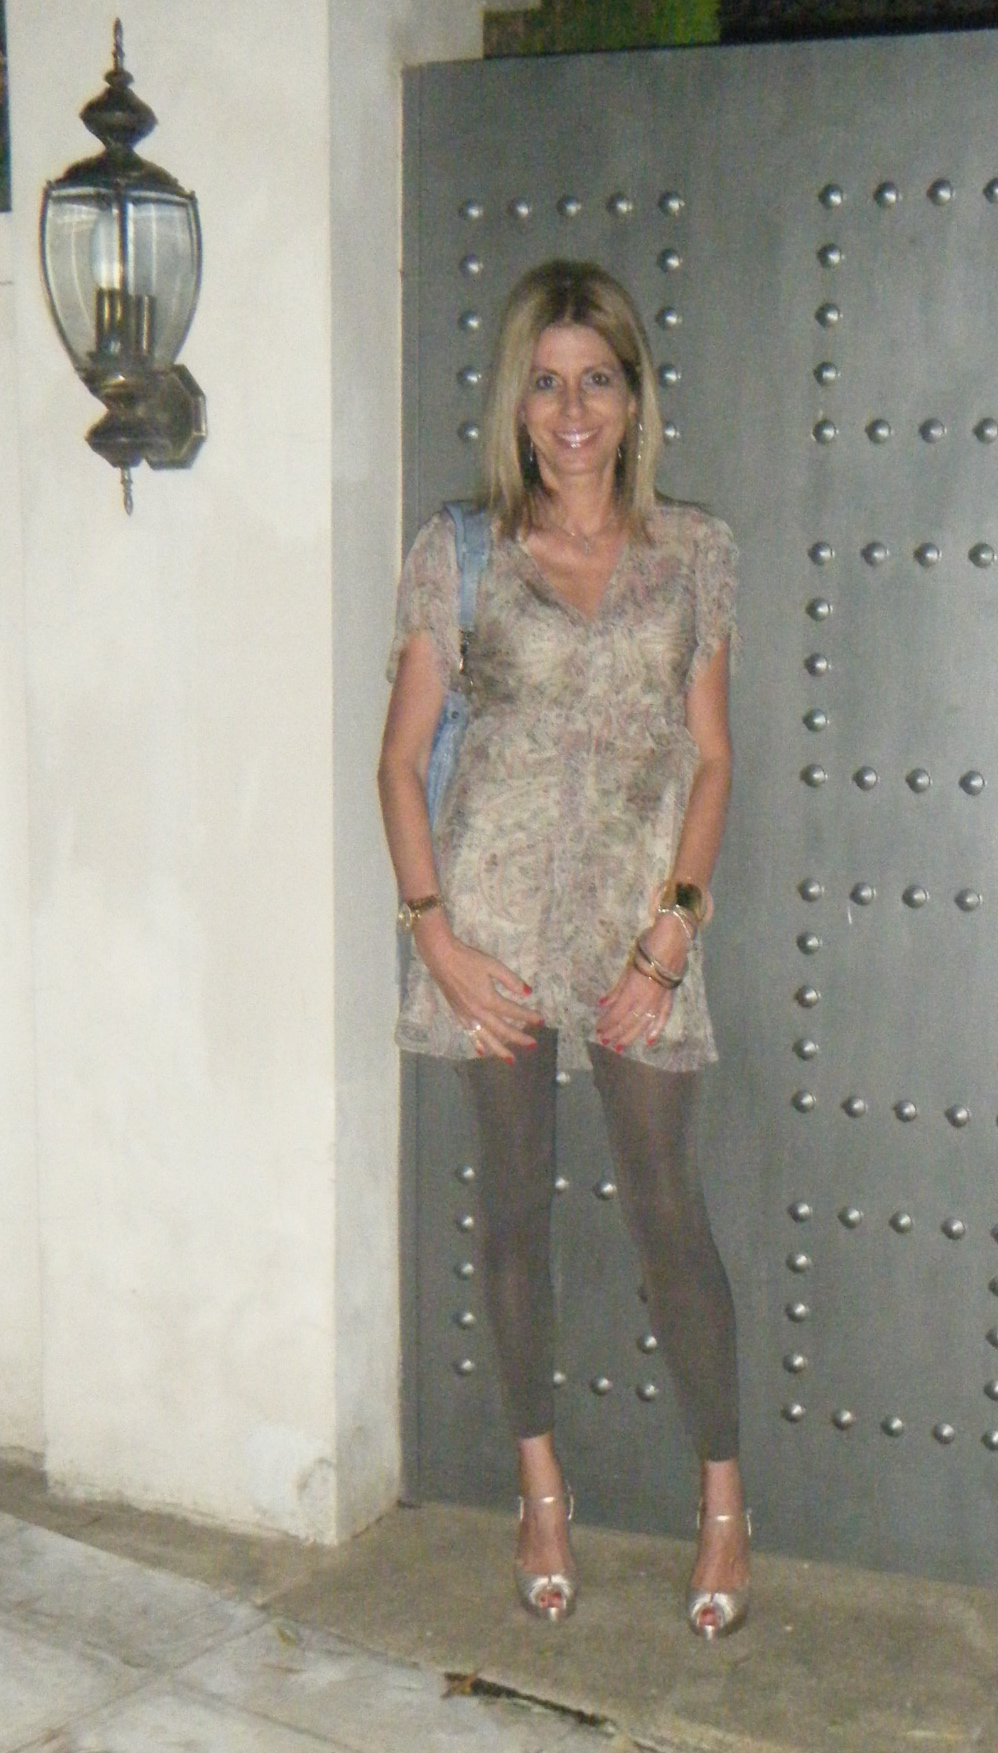 Nina Papaioannou, Gold Christian Louboutin shoes, with a juicy dress and Falke leggings